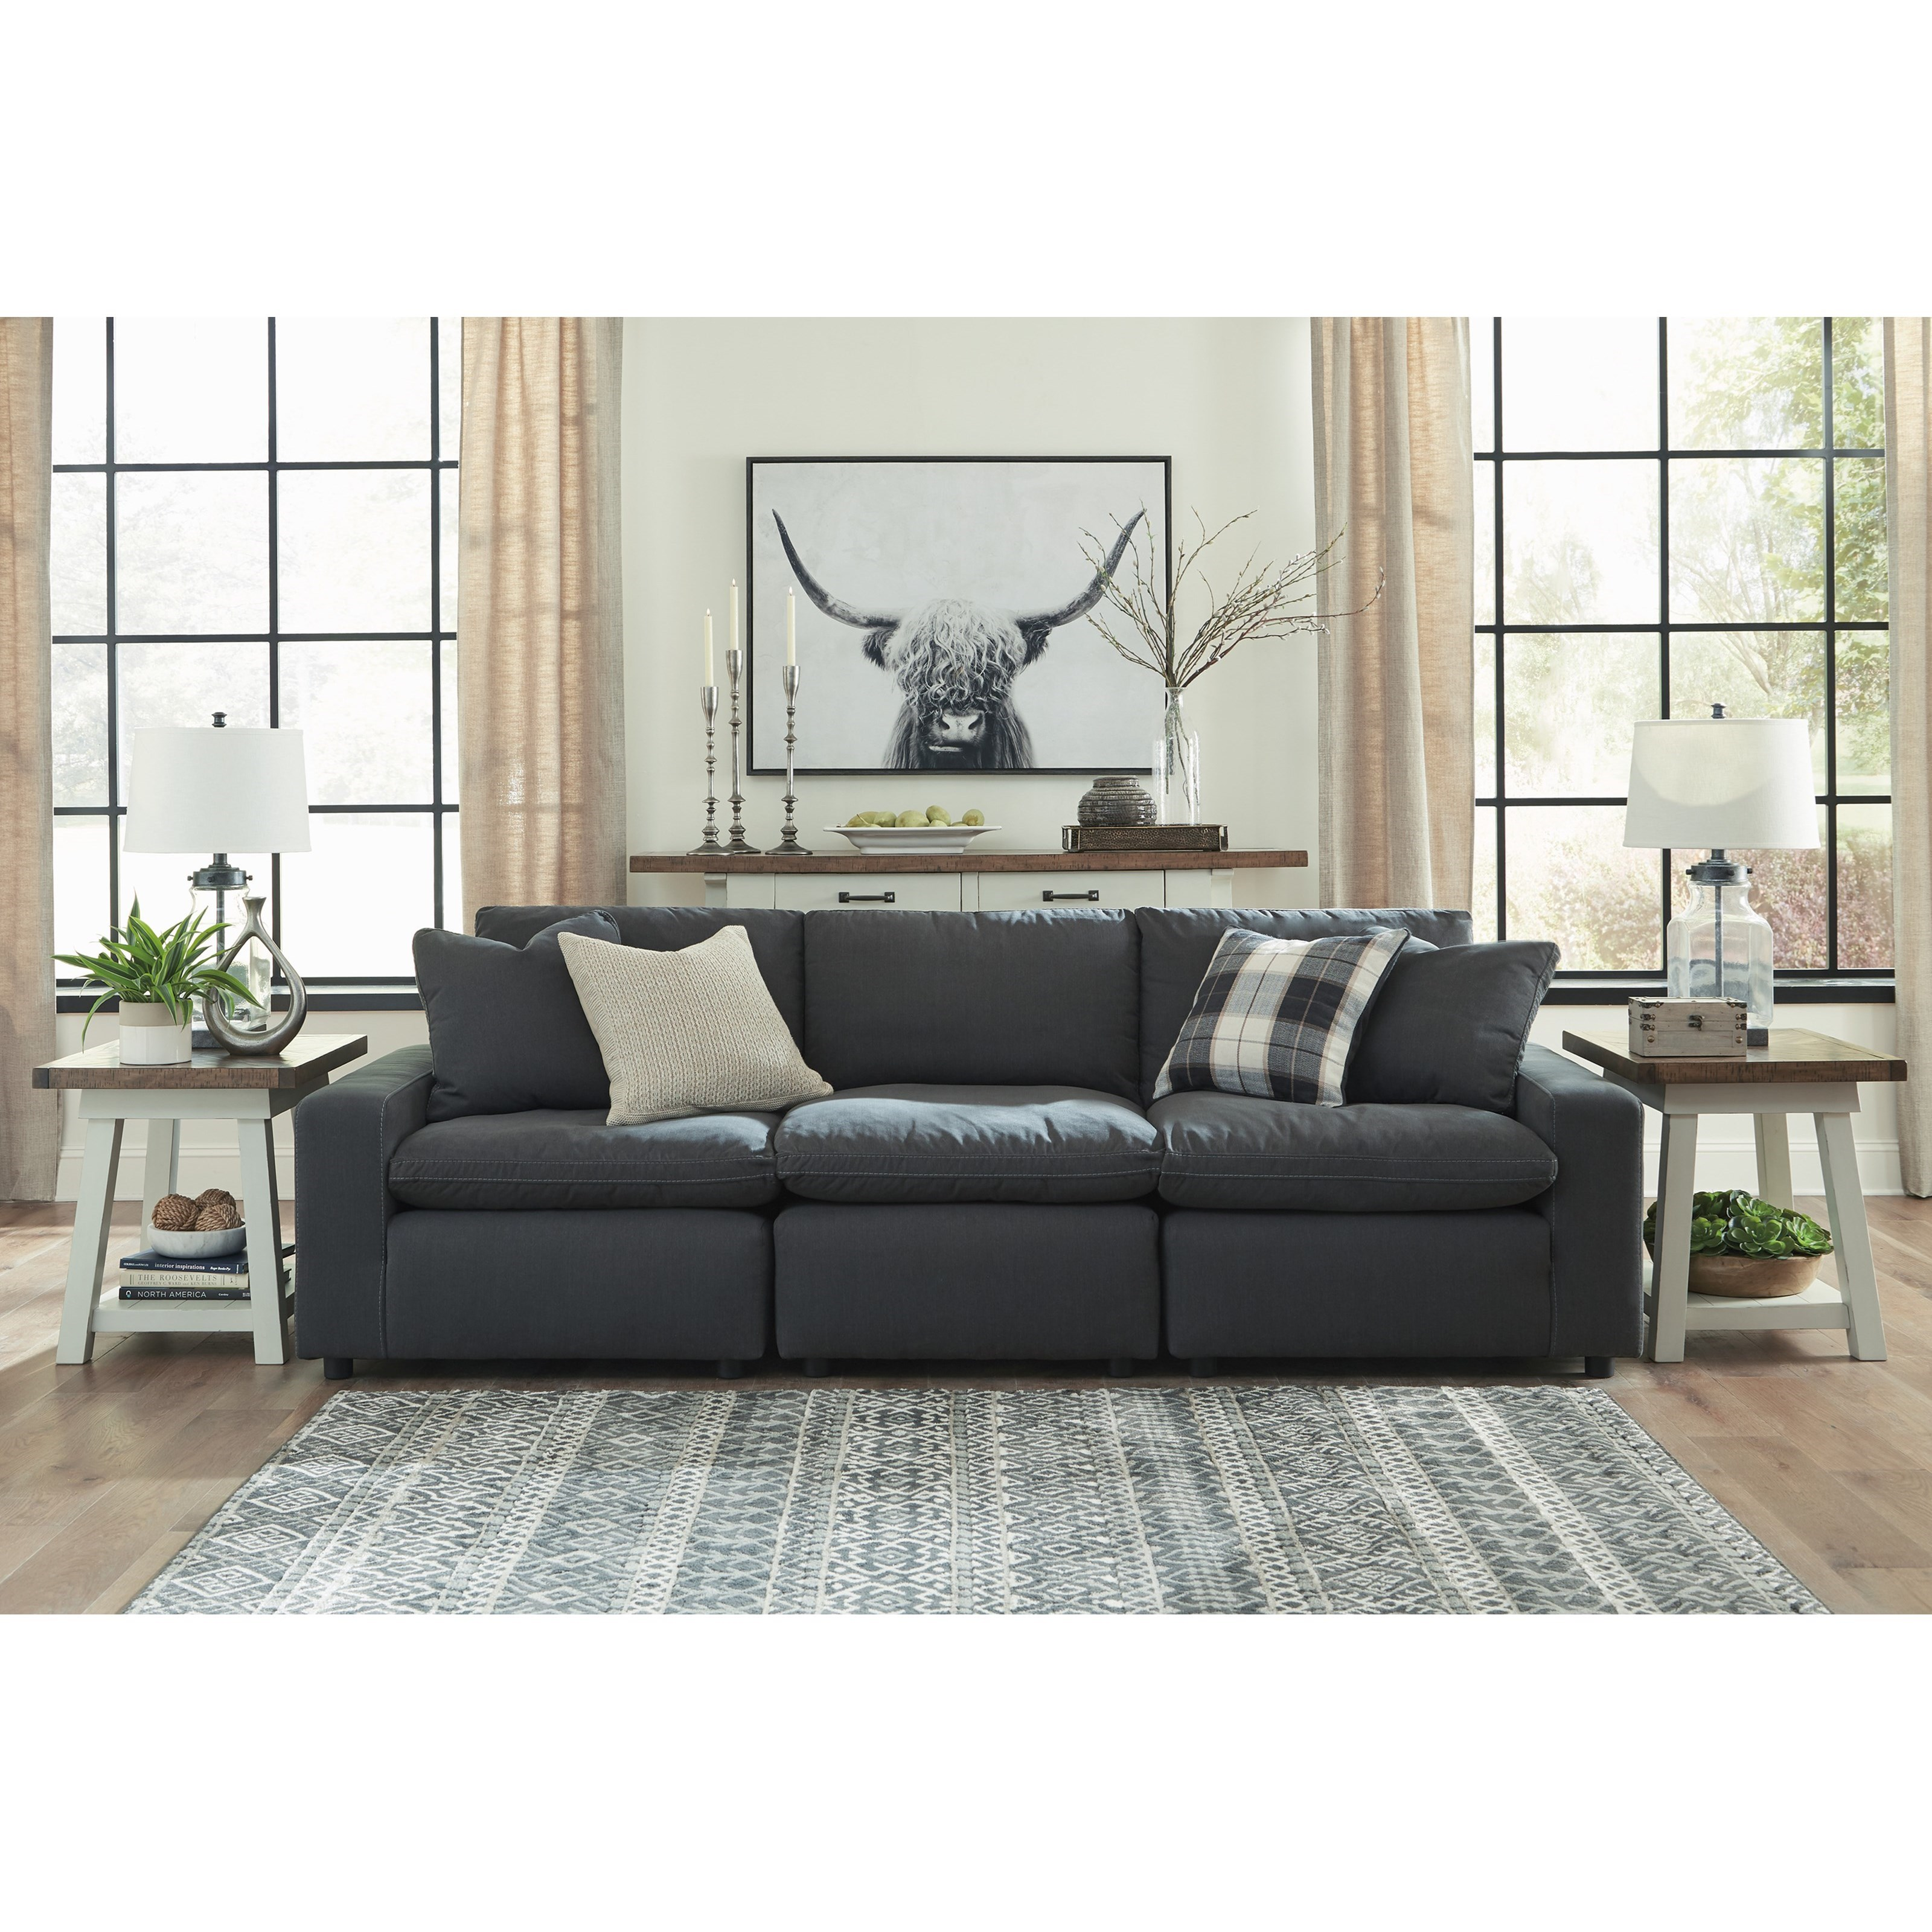 Ashley Furniture Manufacturer: Signature Design By Ashley Savesto Casual Contemporary 3